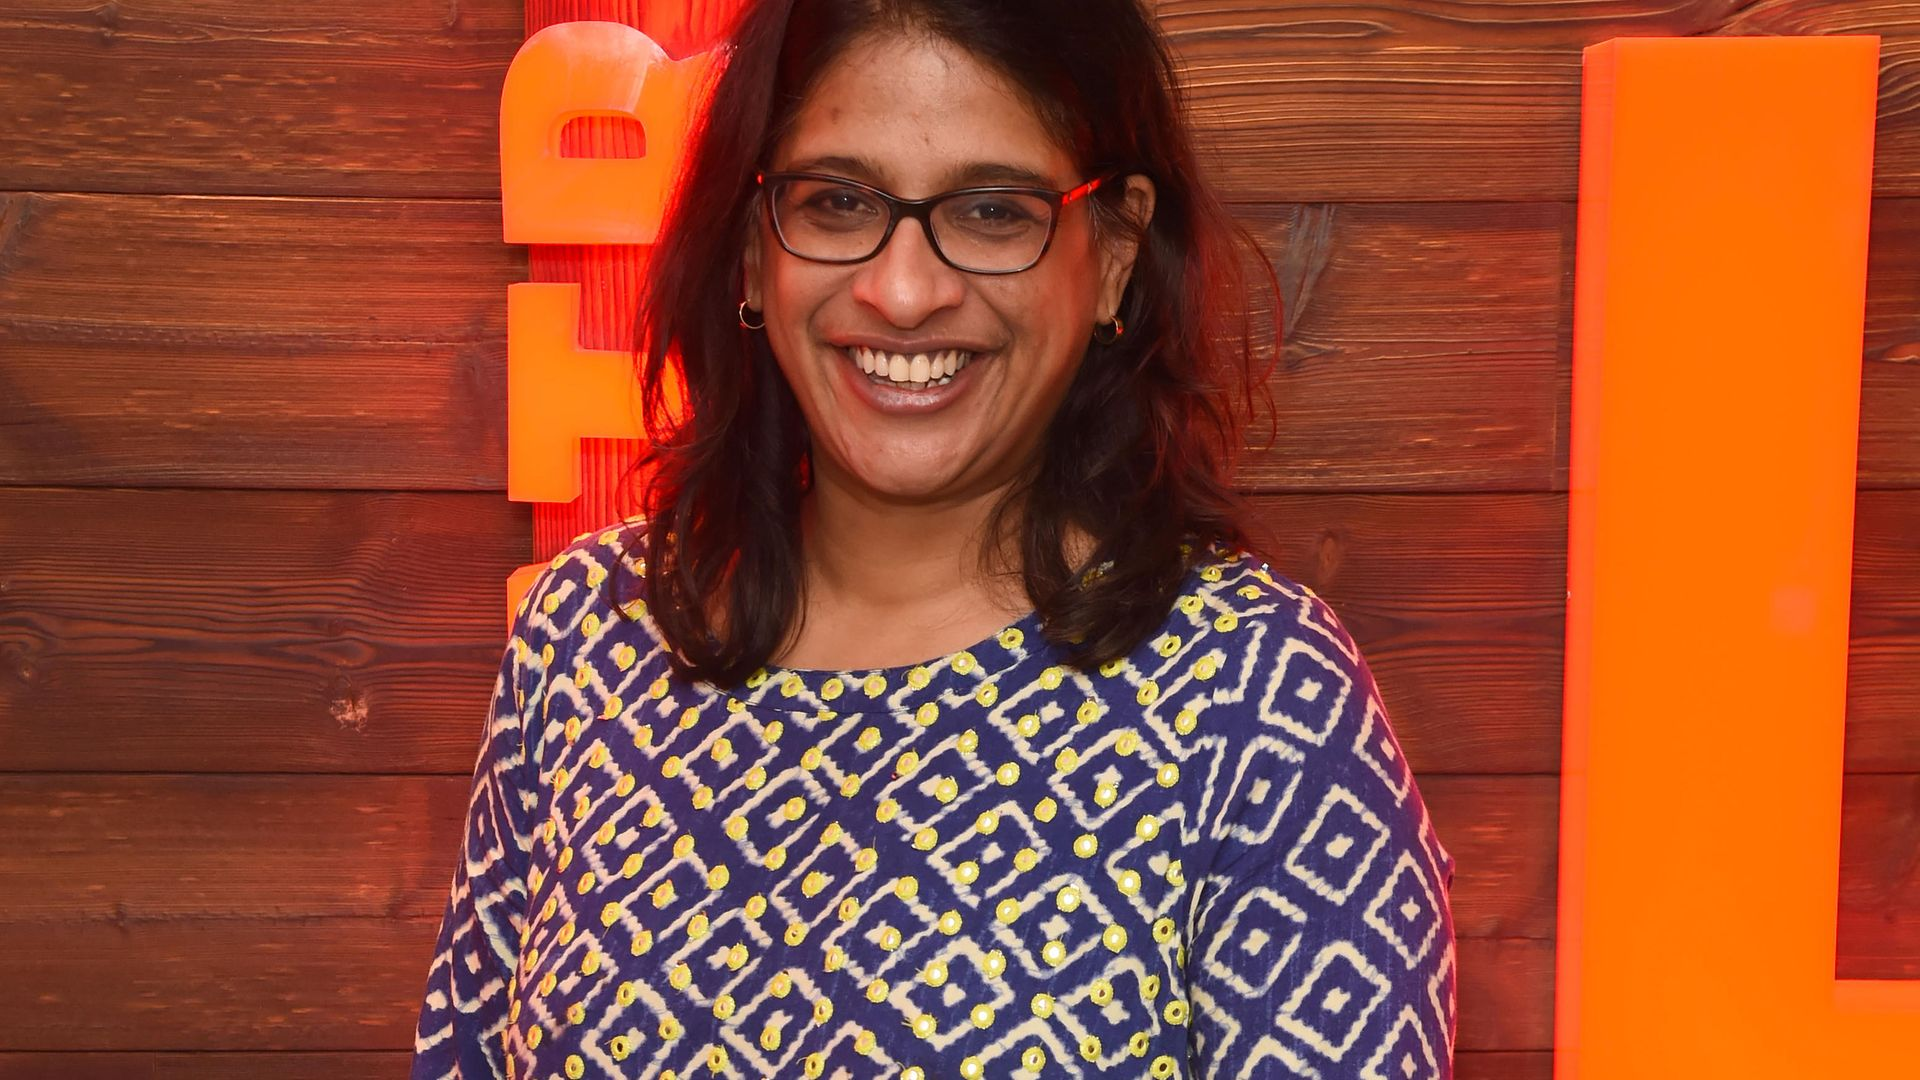 Director Indhu Rubasingham at the Kiln theatre in October 2019 - Credit: Dave Benett/Getty Images